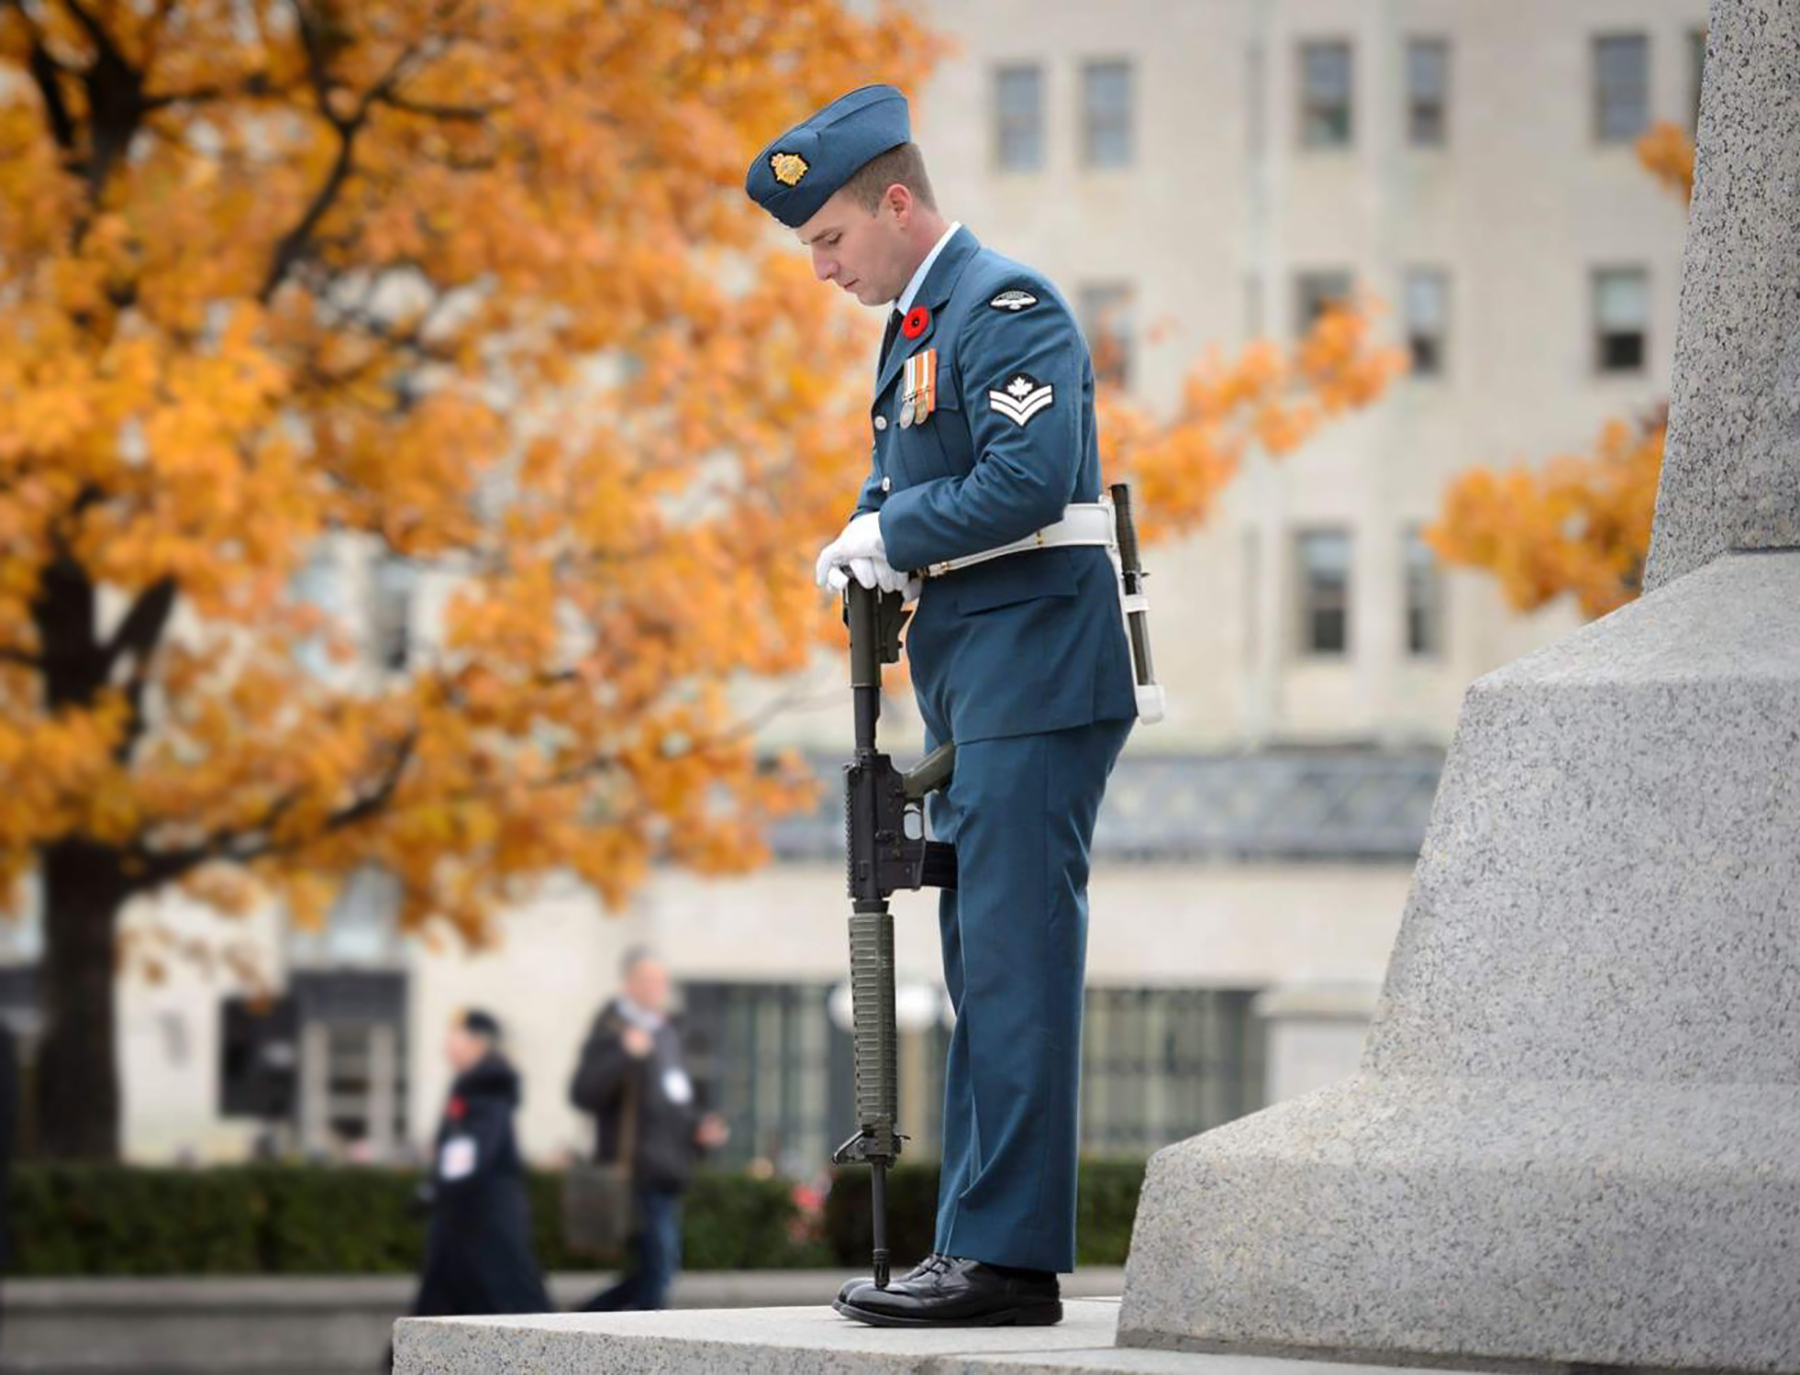 A man wearing a poppy on his blue military uniform stands with his head bowed and his rifle reversed at a war memorial.